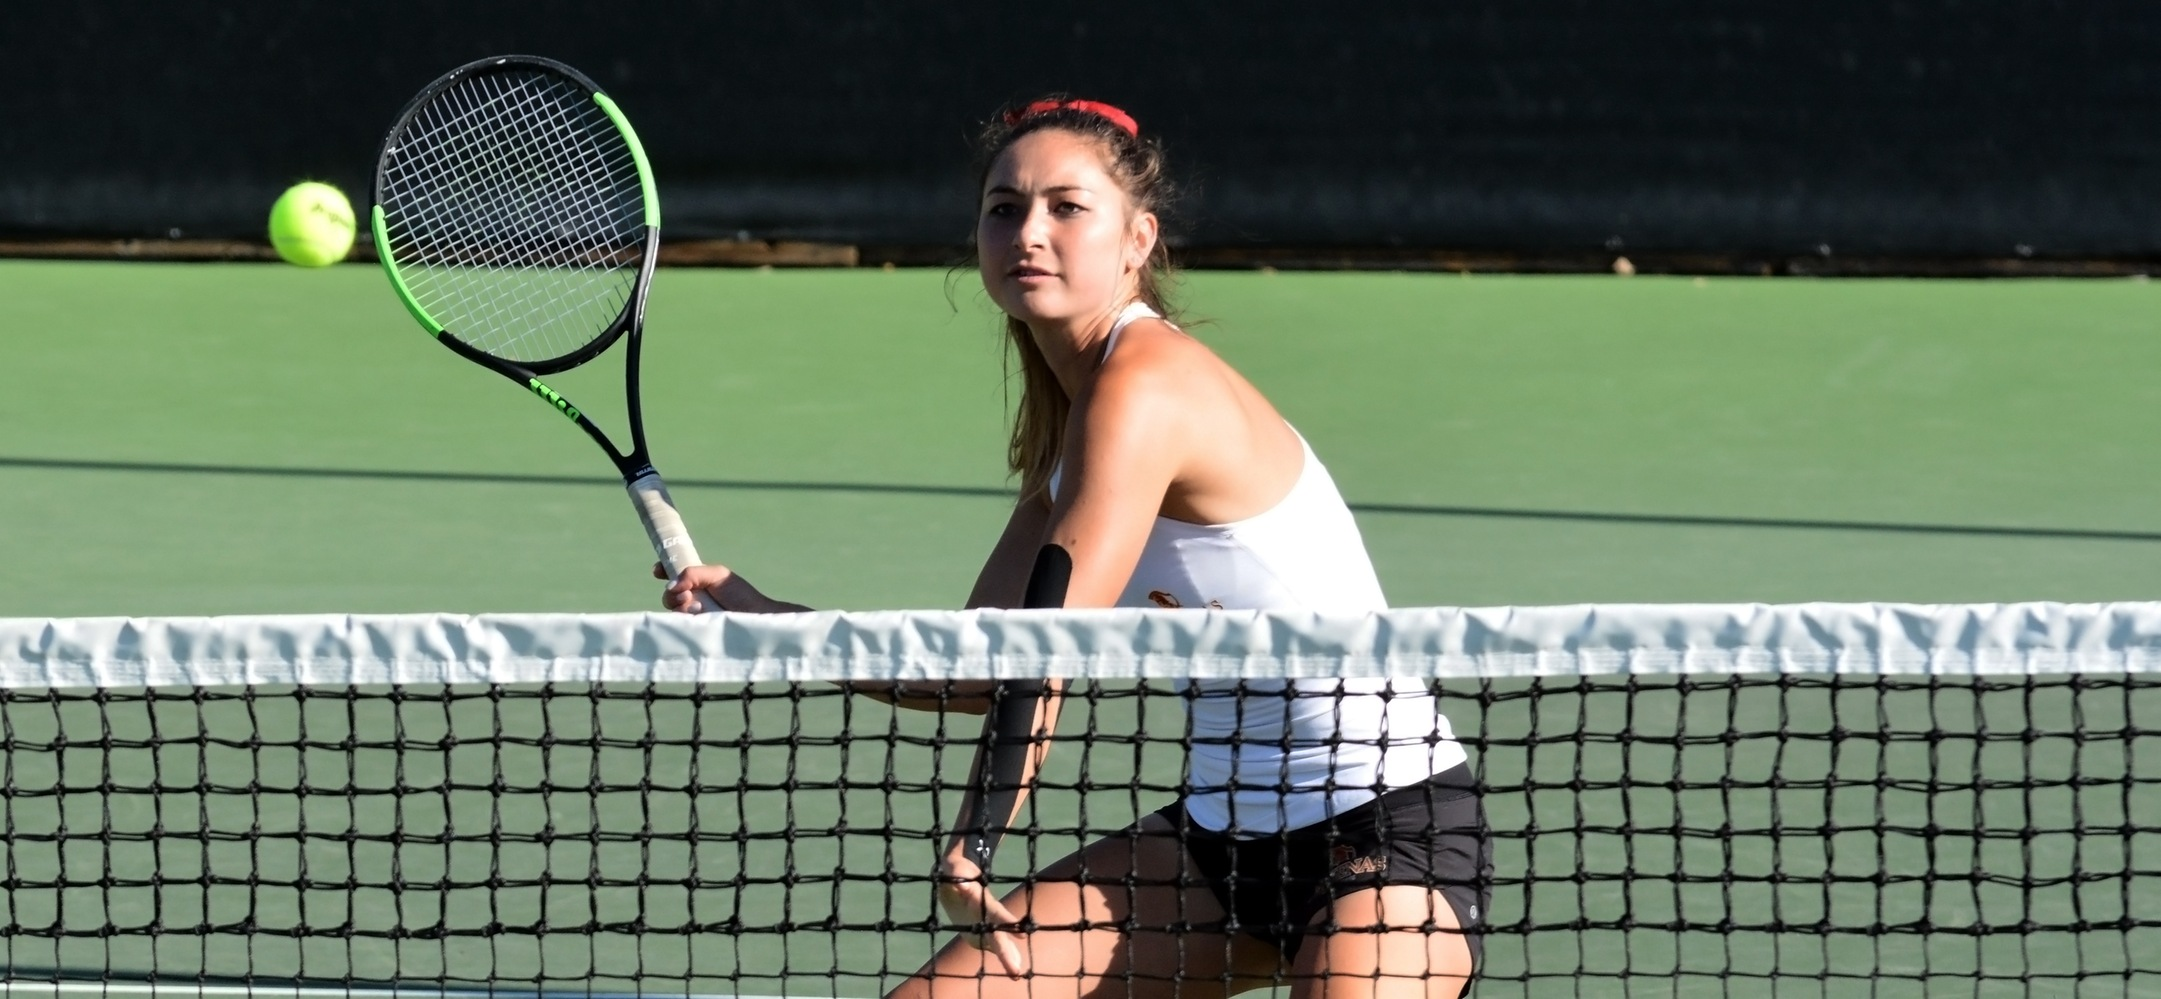 Catherine Allen was part of an 8-7 comeback win in doubles, and then took a 6-0, 6-2 win in singles